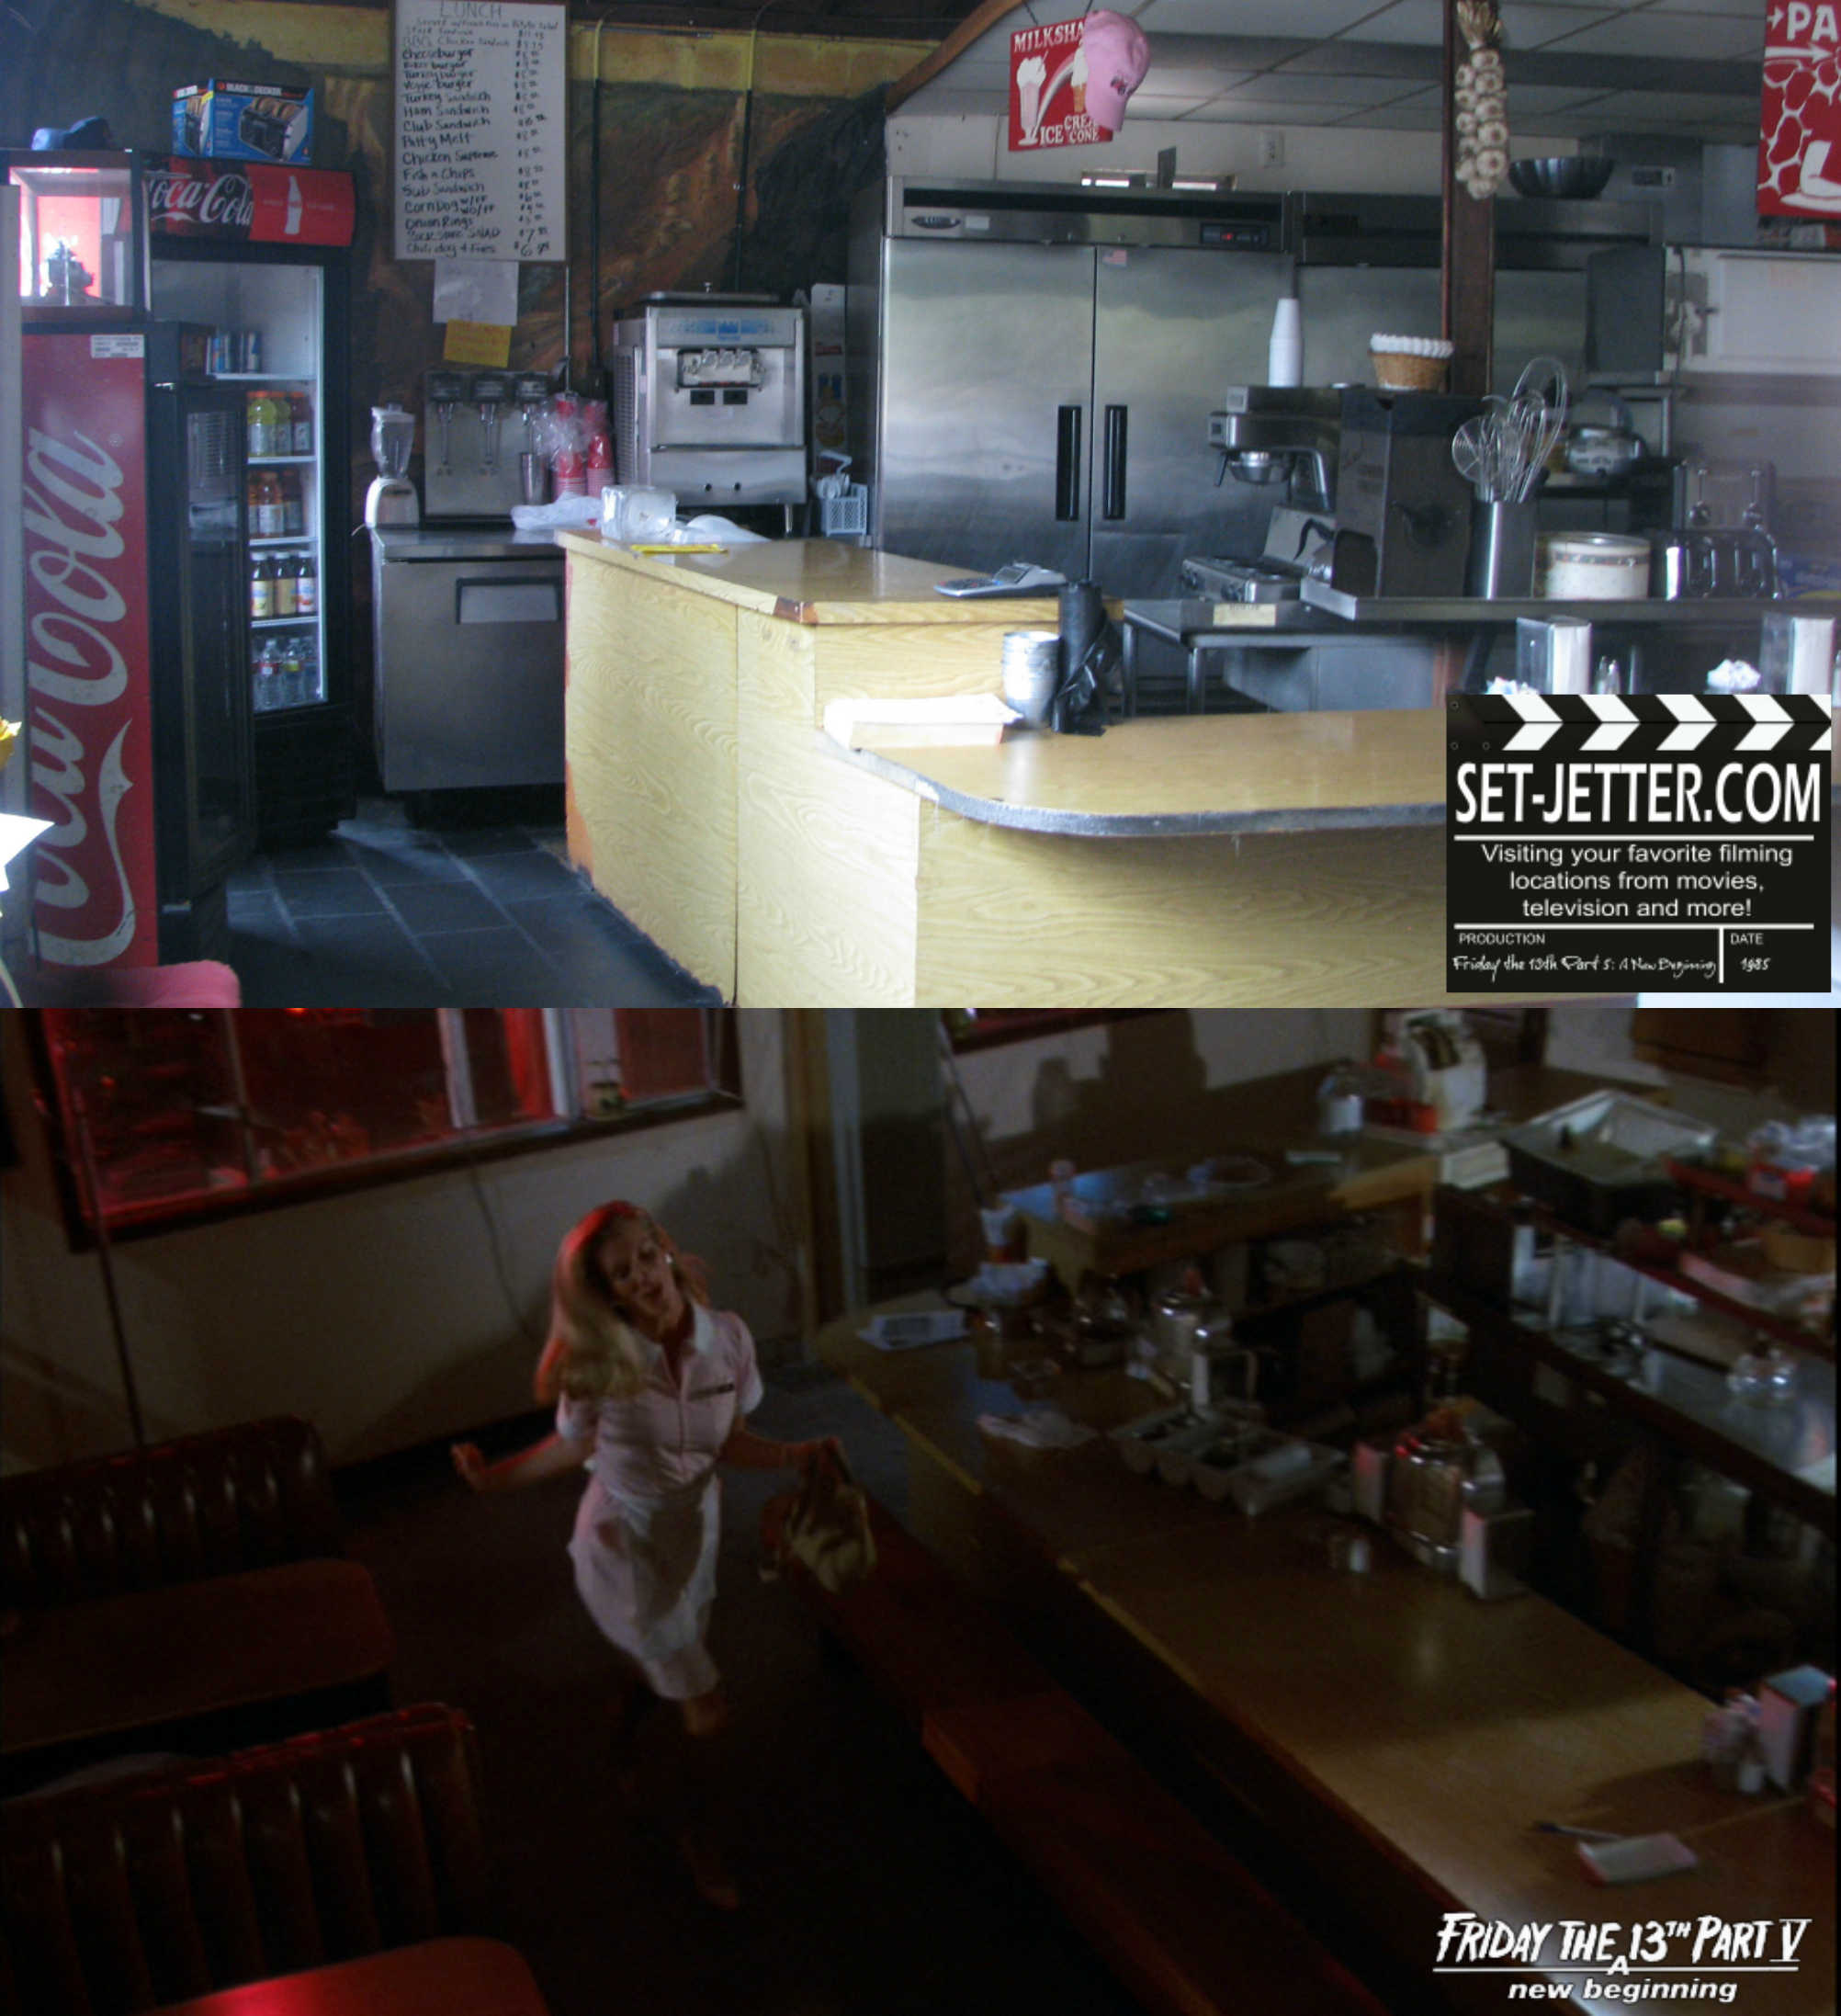 Friday the 13th Part V comparison 07.jpg